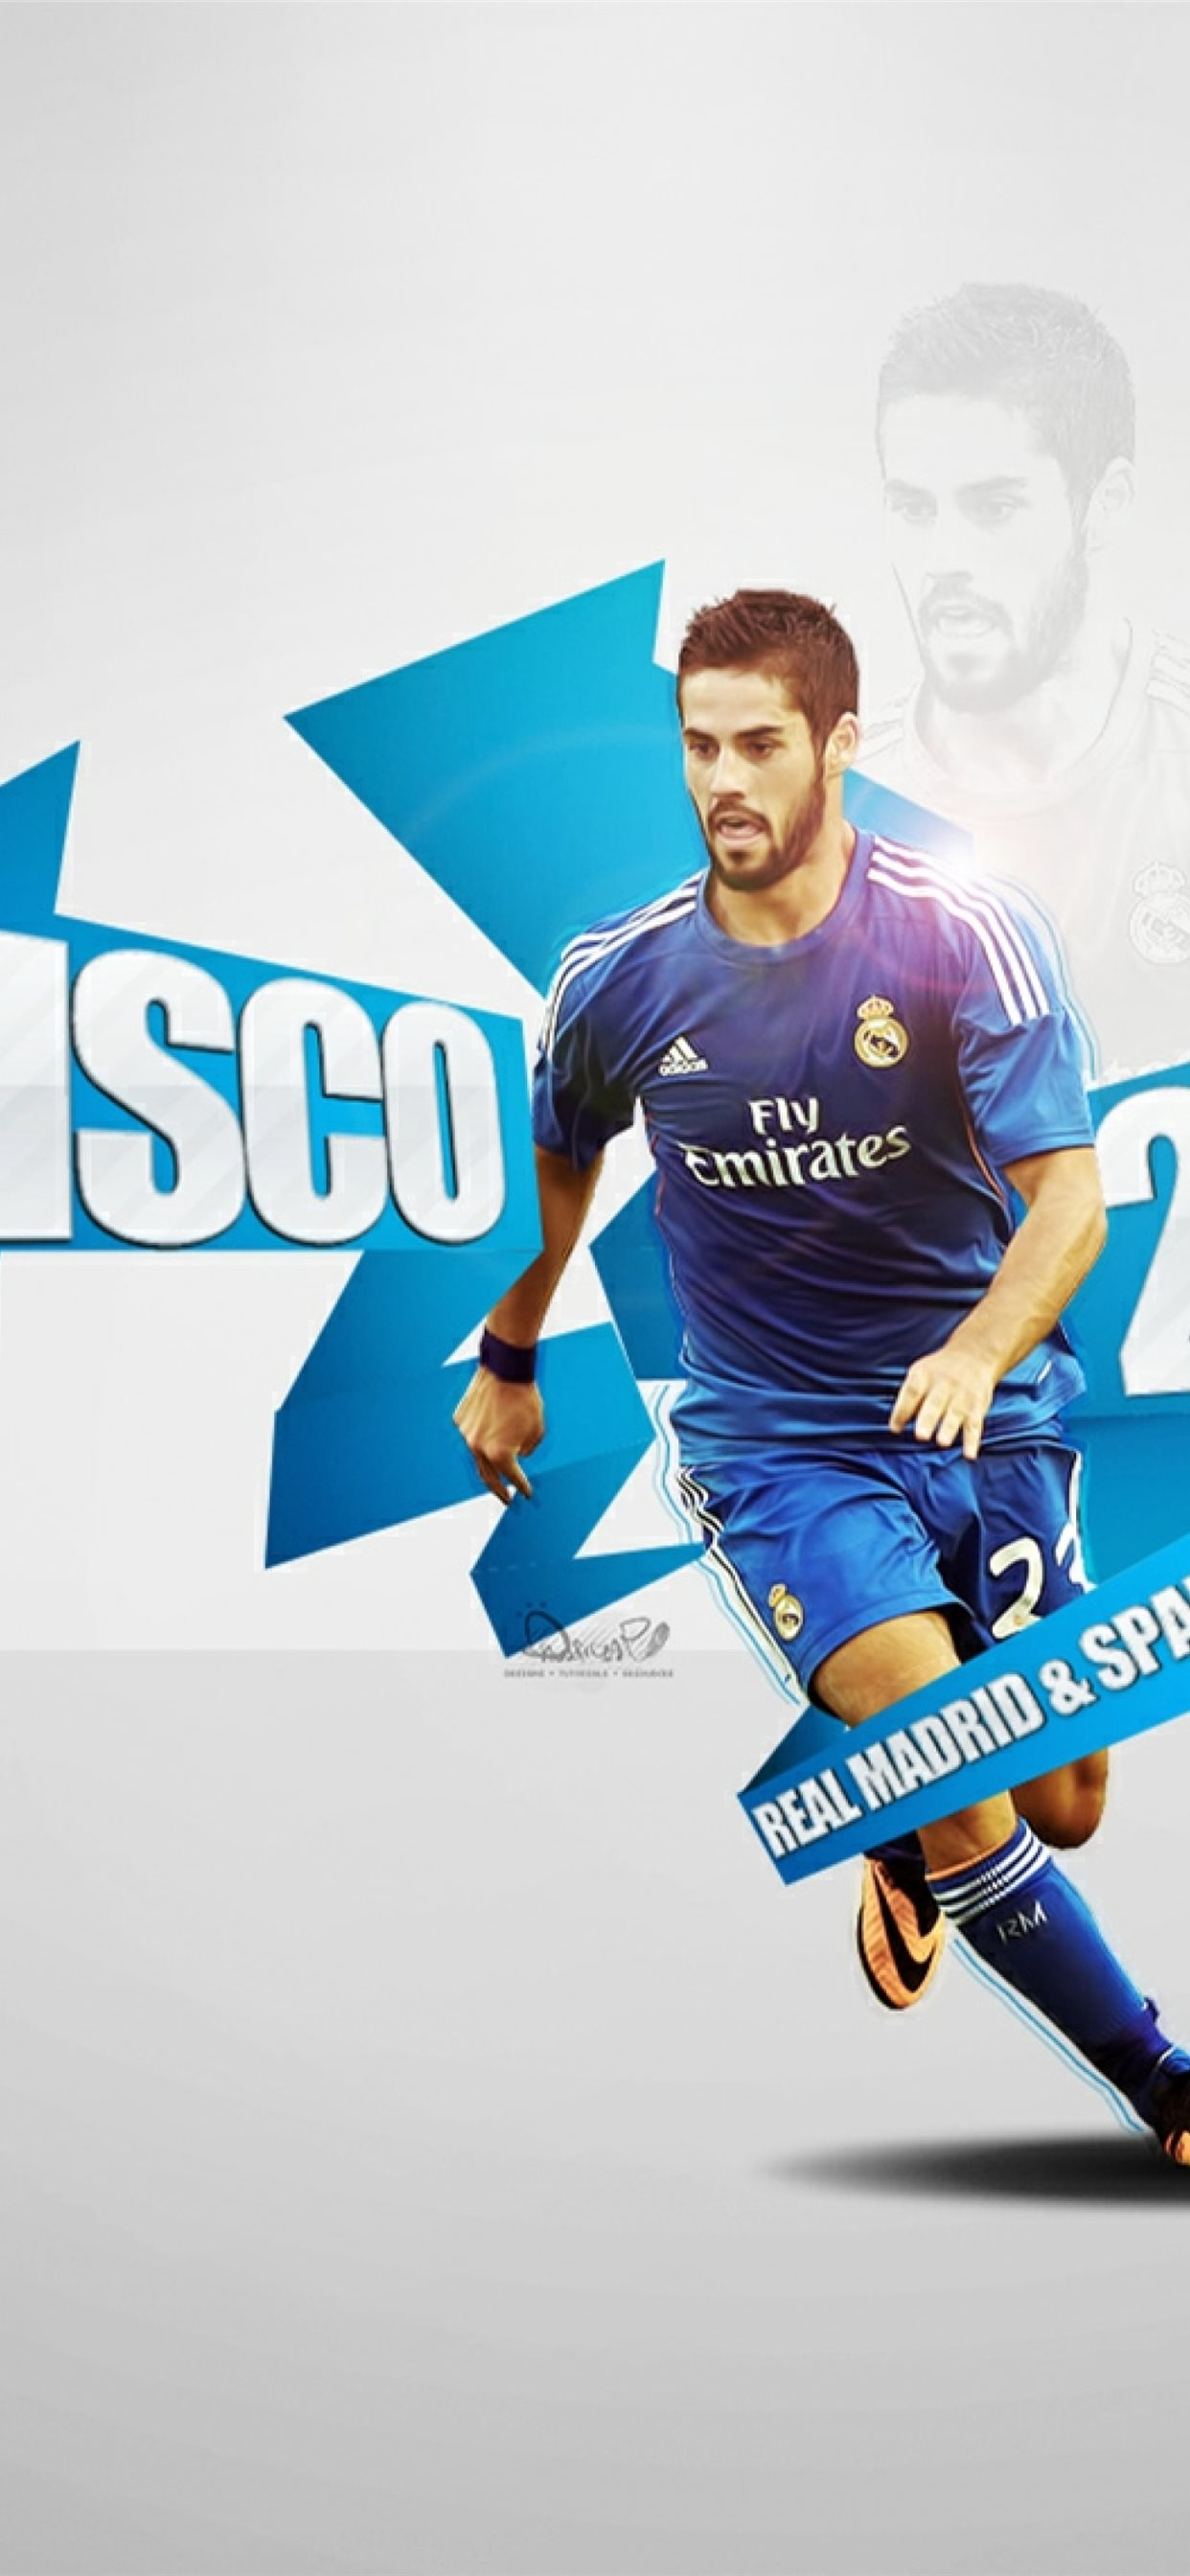 isco real madrid soccer Samsung Galaxy Note 9 8 S9 iphone 11 pro max wallpaper